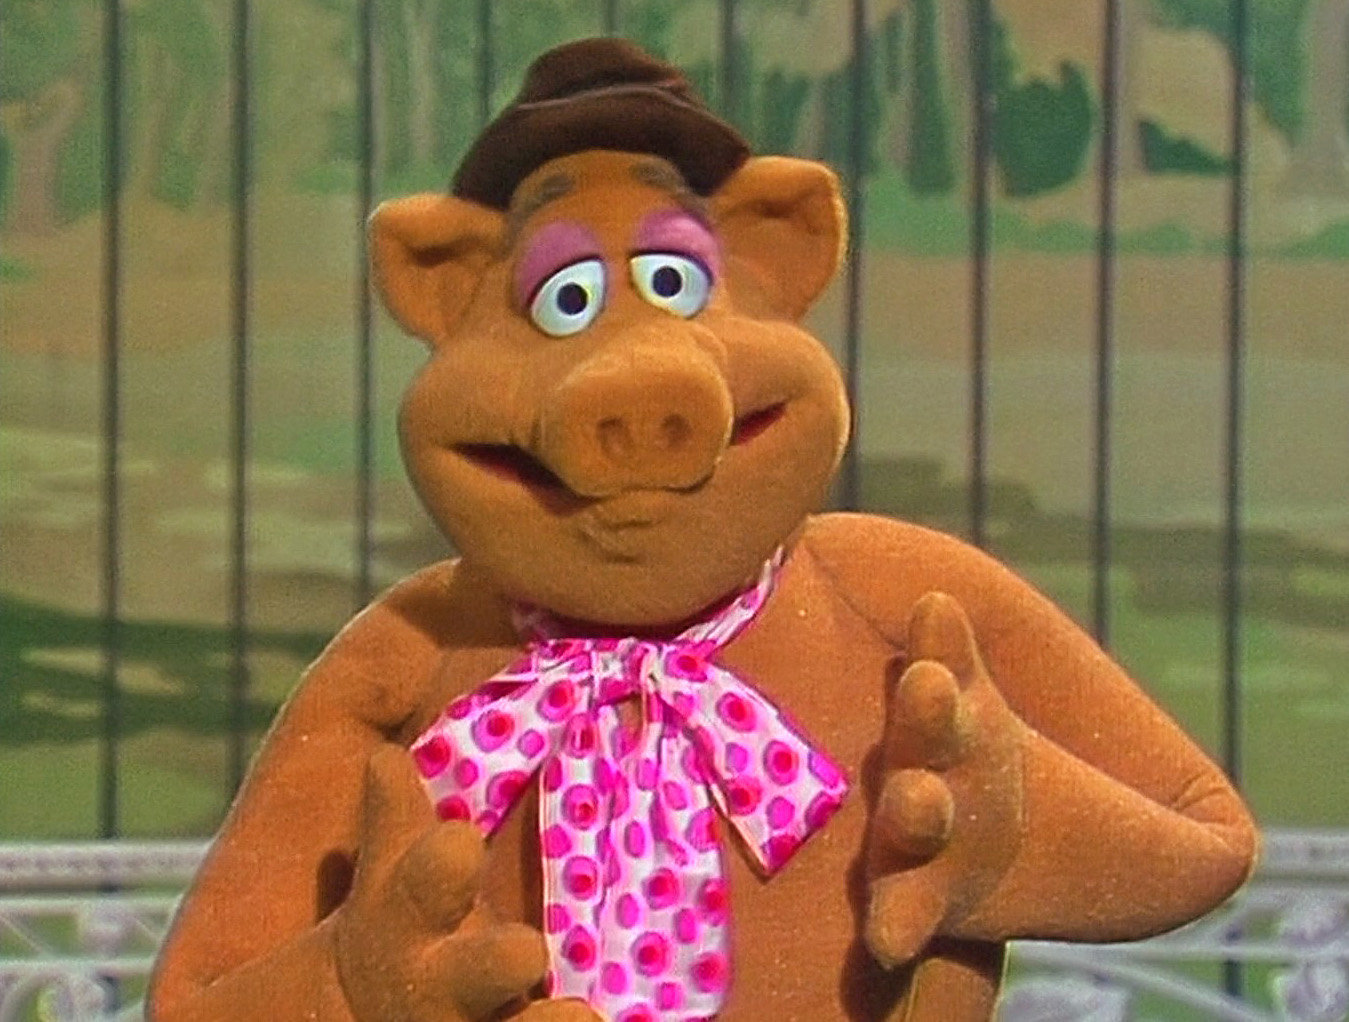 Fozzie Pig | Muppet Wiki | FANDOM powered by Wikia Wanted Man Bear Pig